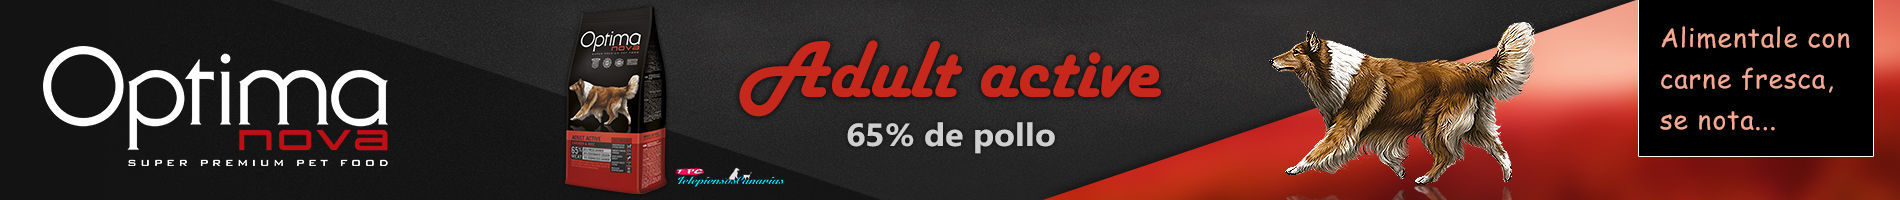 Optima nova adult active, con 65% de pollo y 15% de arroz